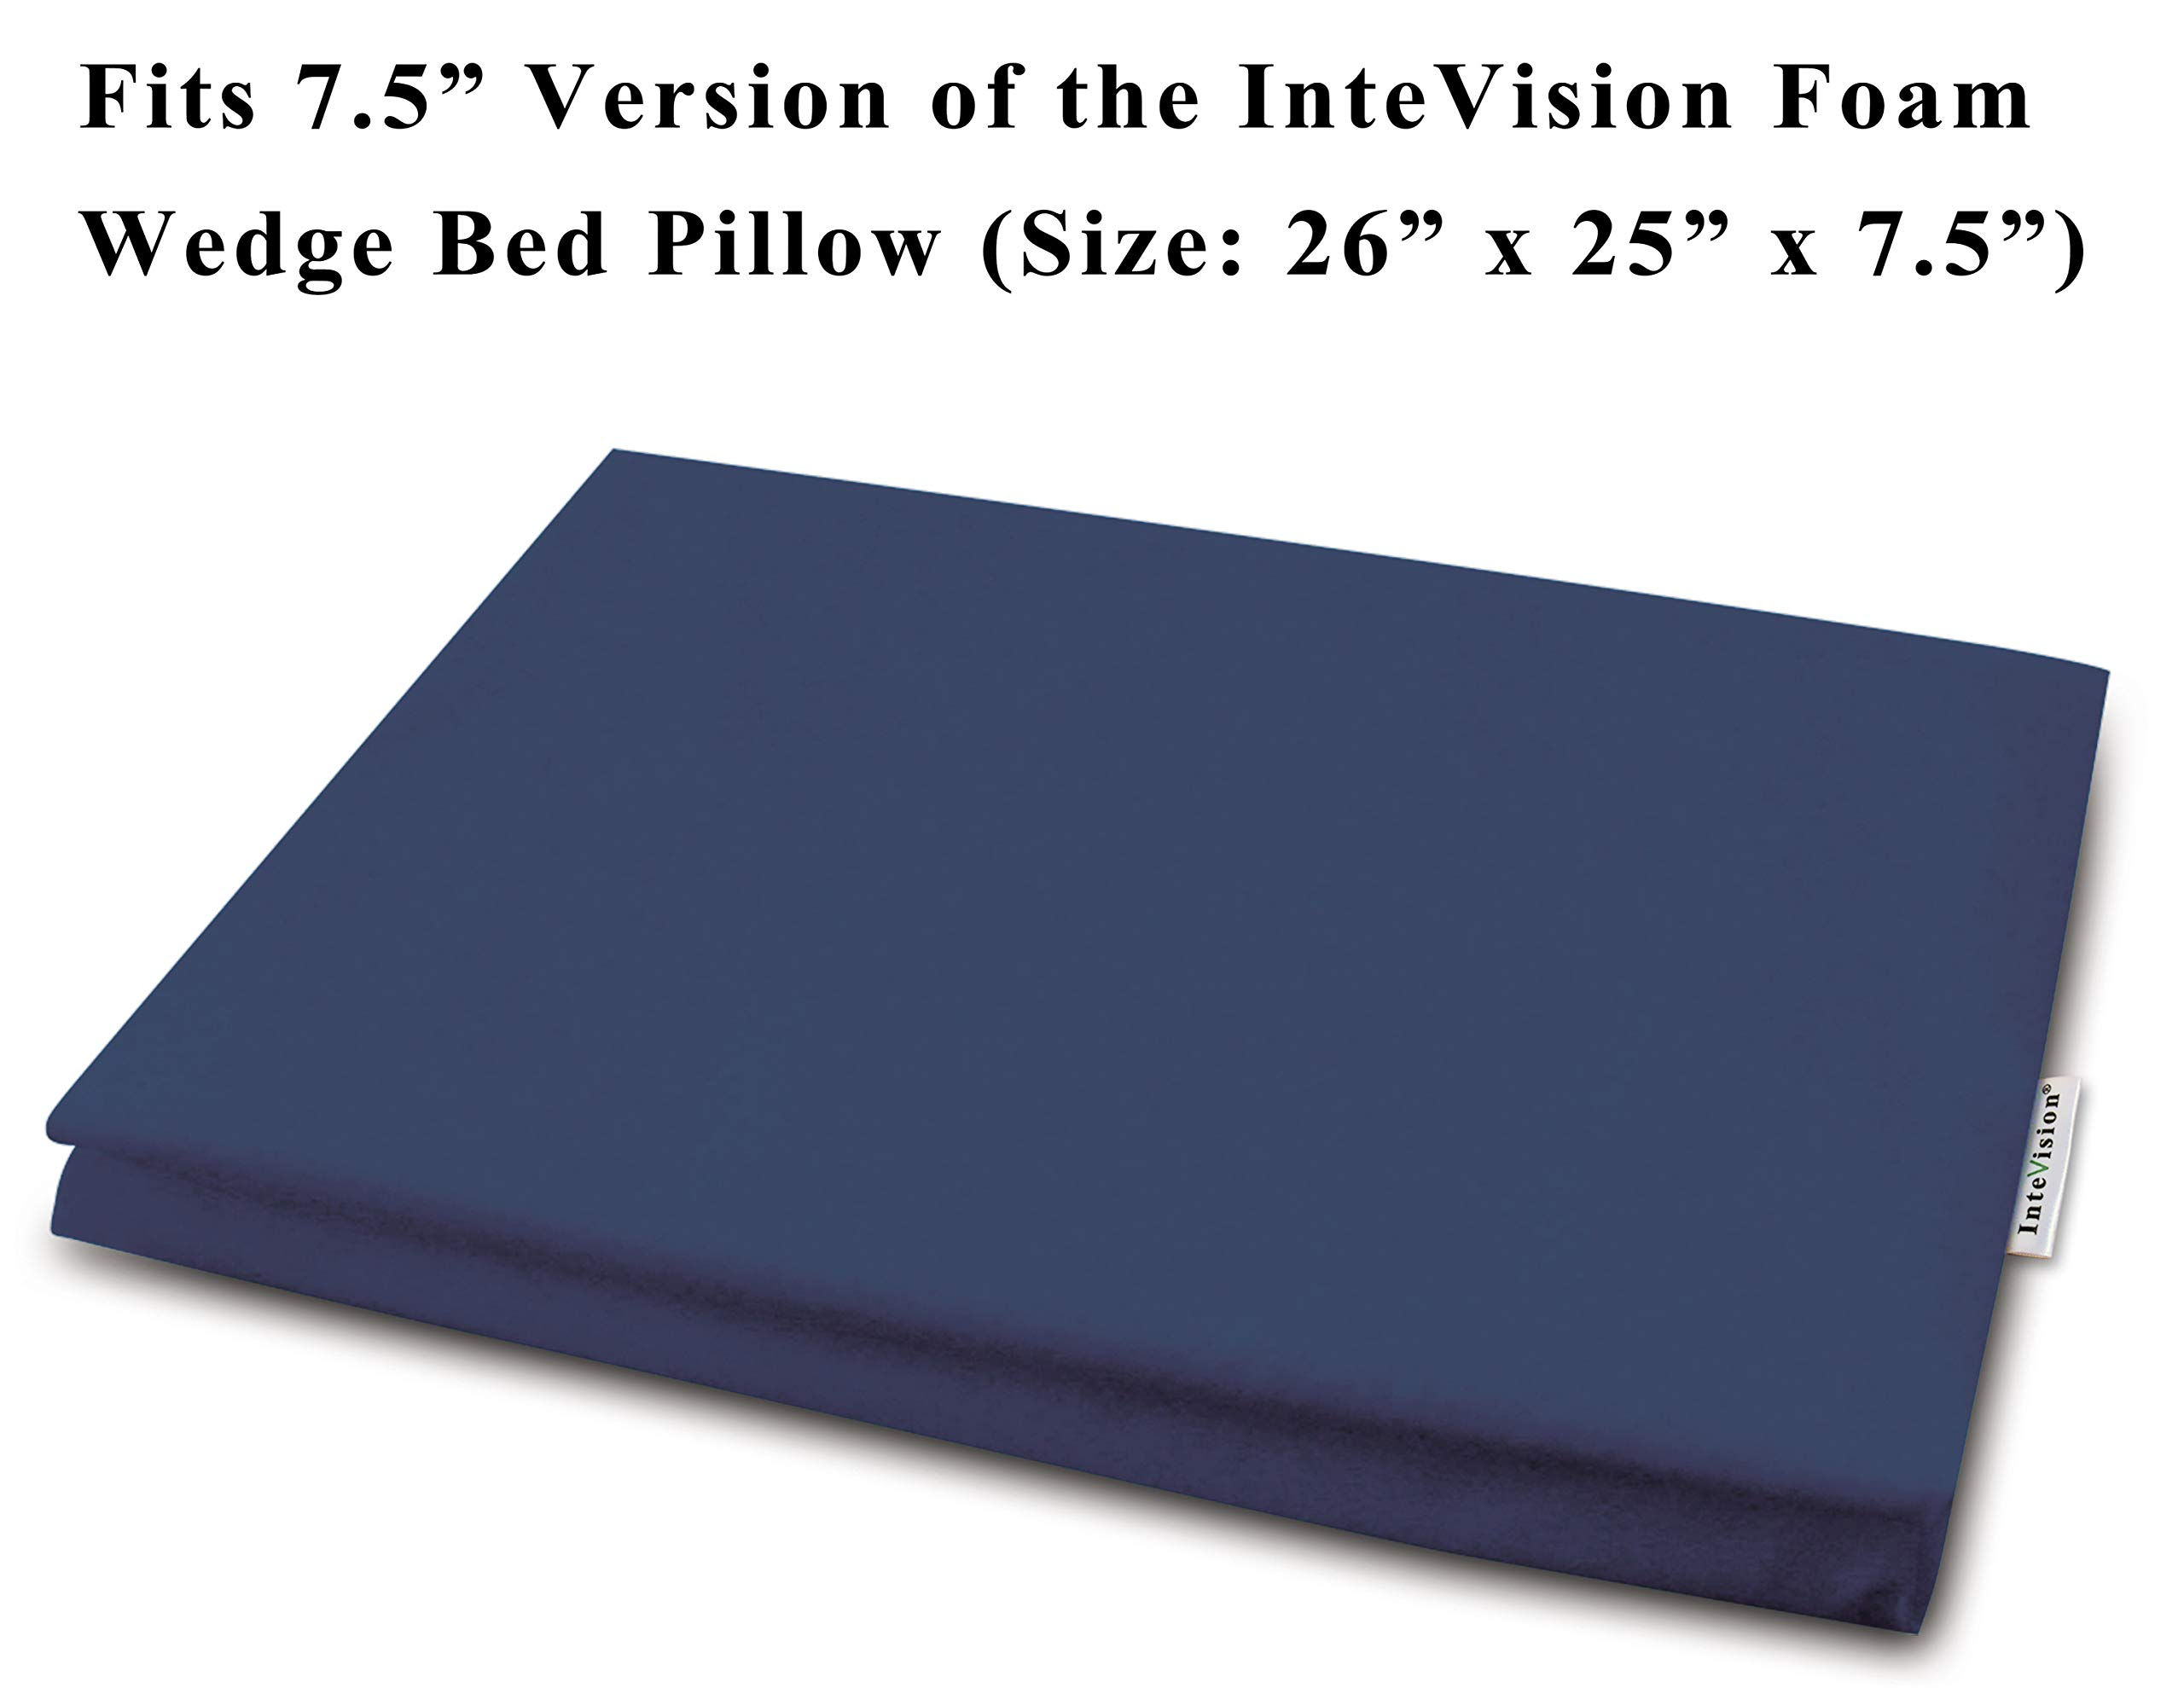 InteVision 400 Thread Count, 100% Egyptian Cotton Pillowcase. Designed to Fit The 7.5'' Version of The Foam Wedge Bed Pillow (26'' x 25'' x 7.5'')